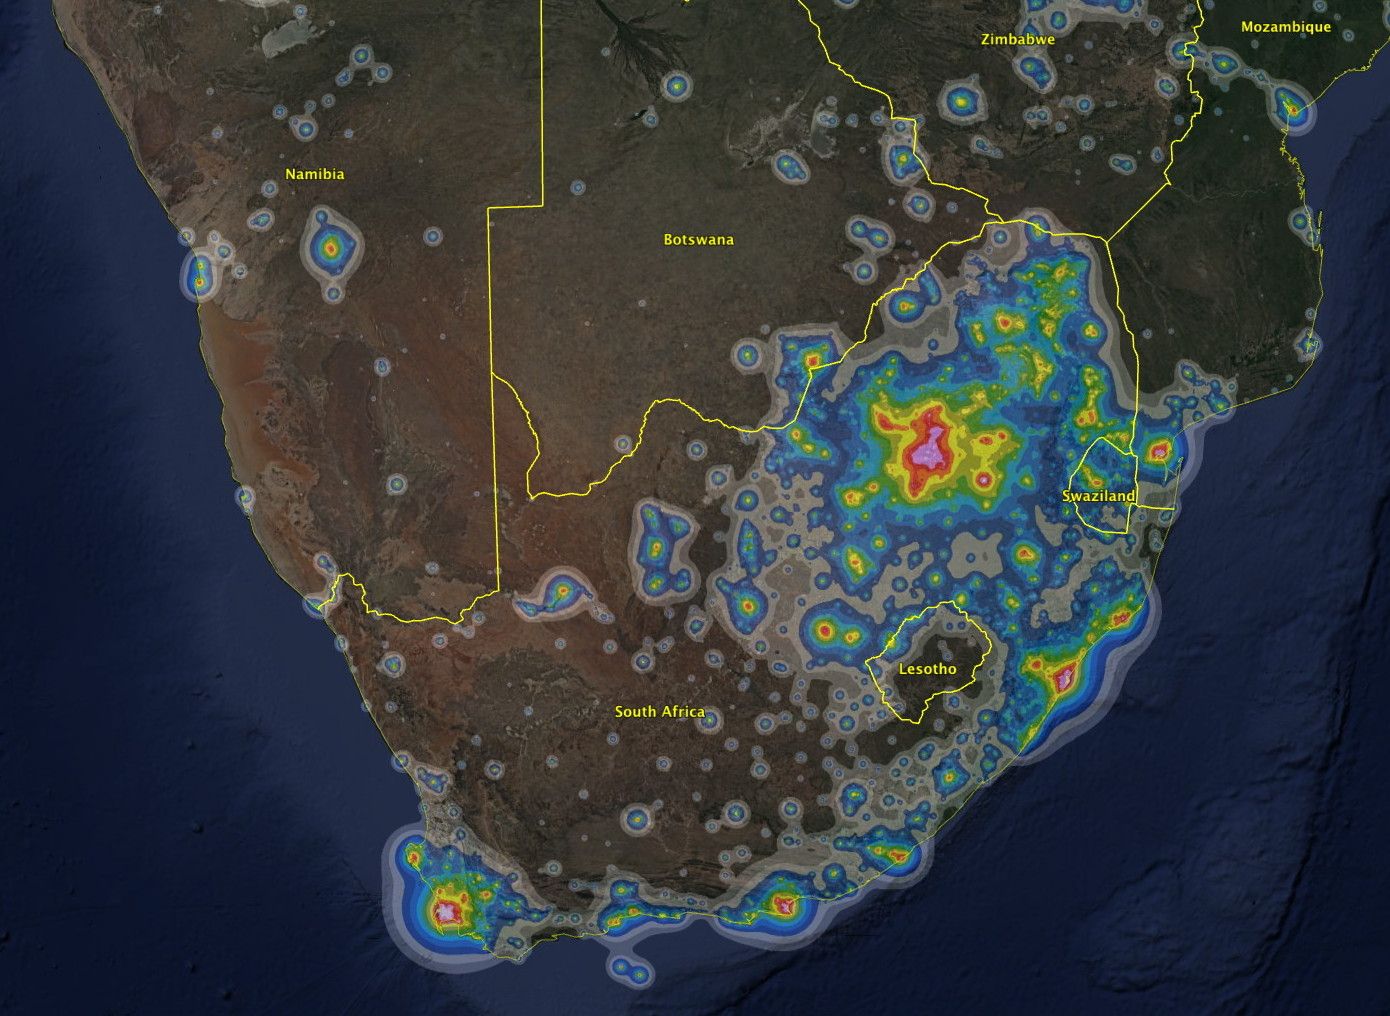 SOUTHERN AFRICA LIGHT POLLUTION